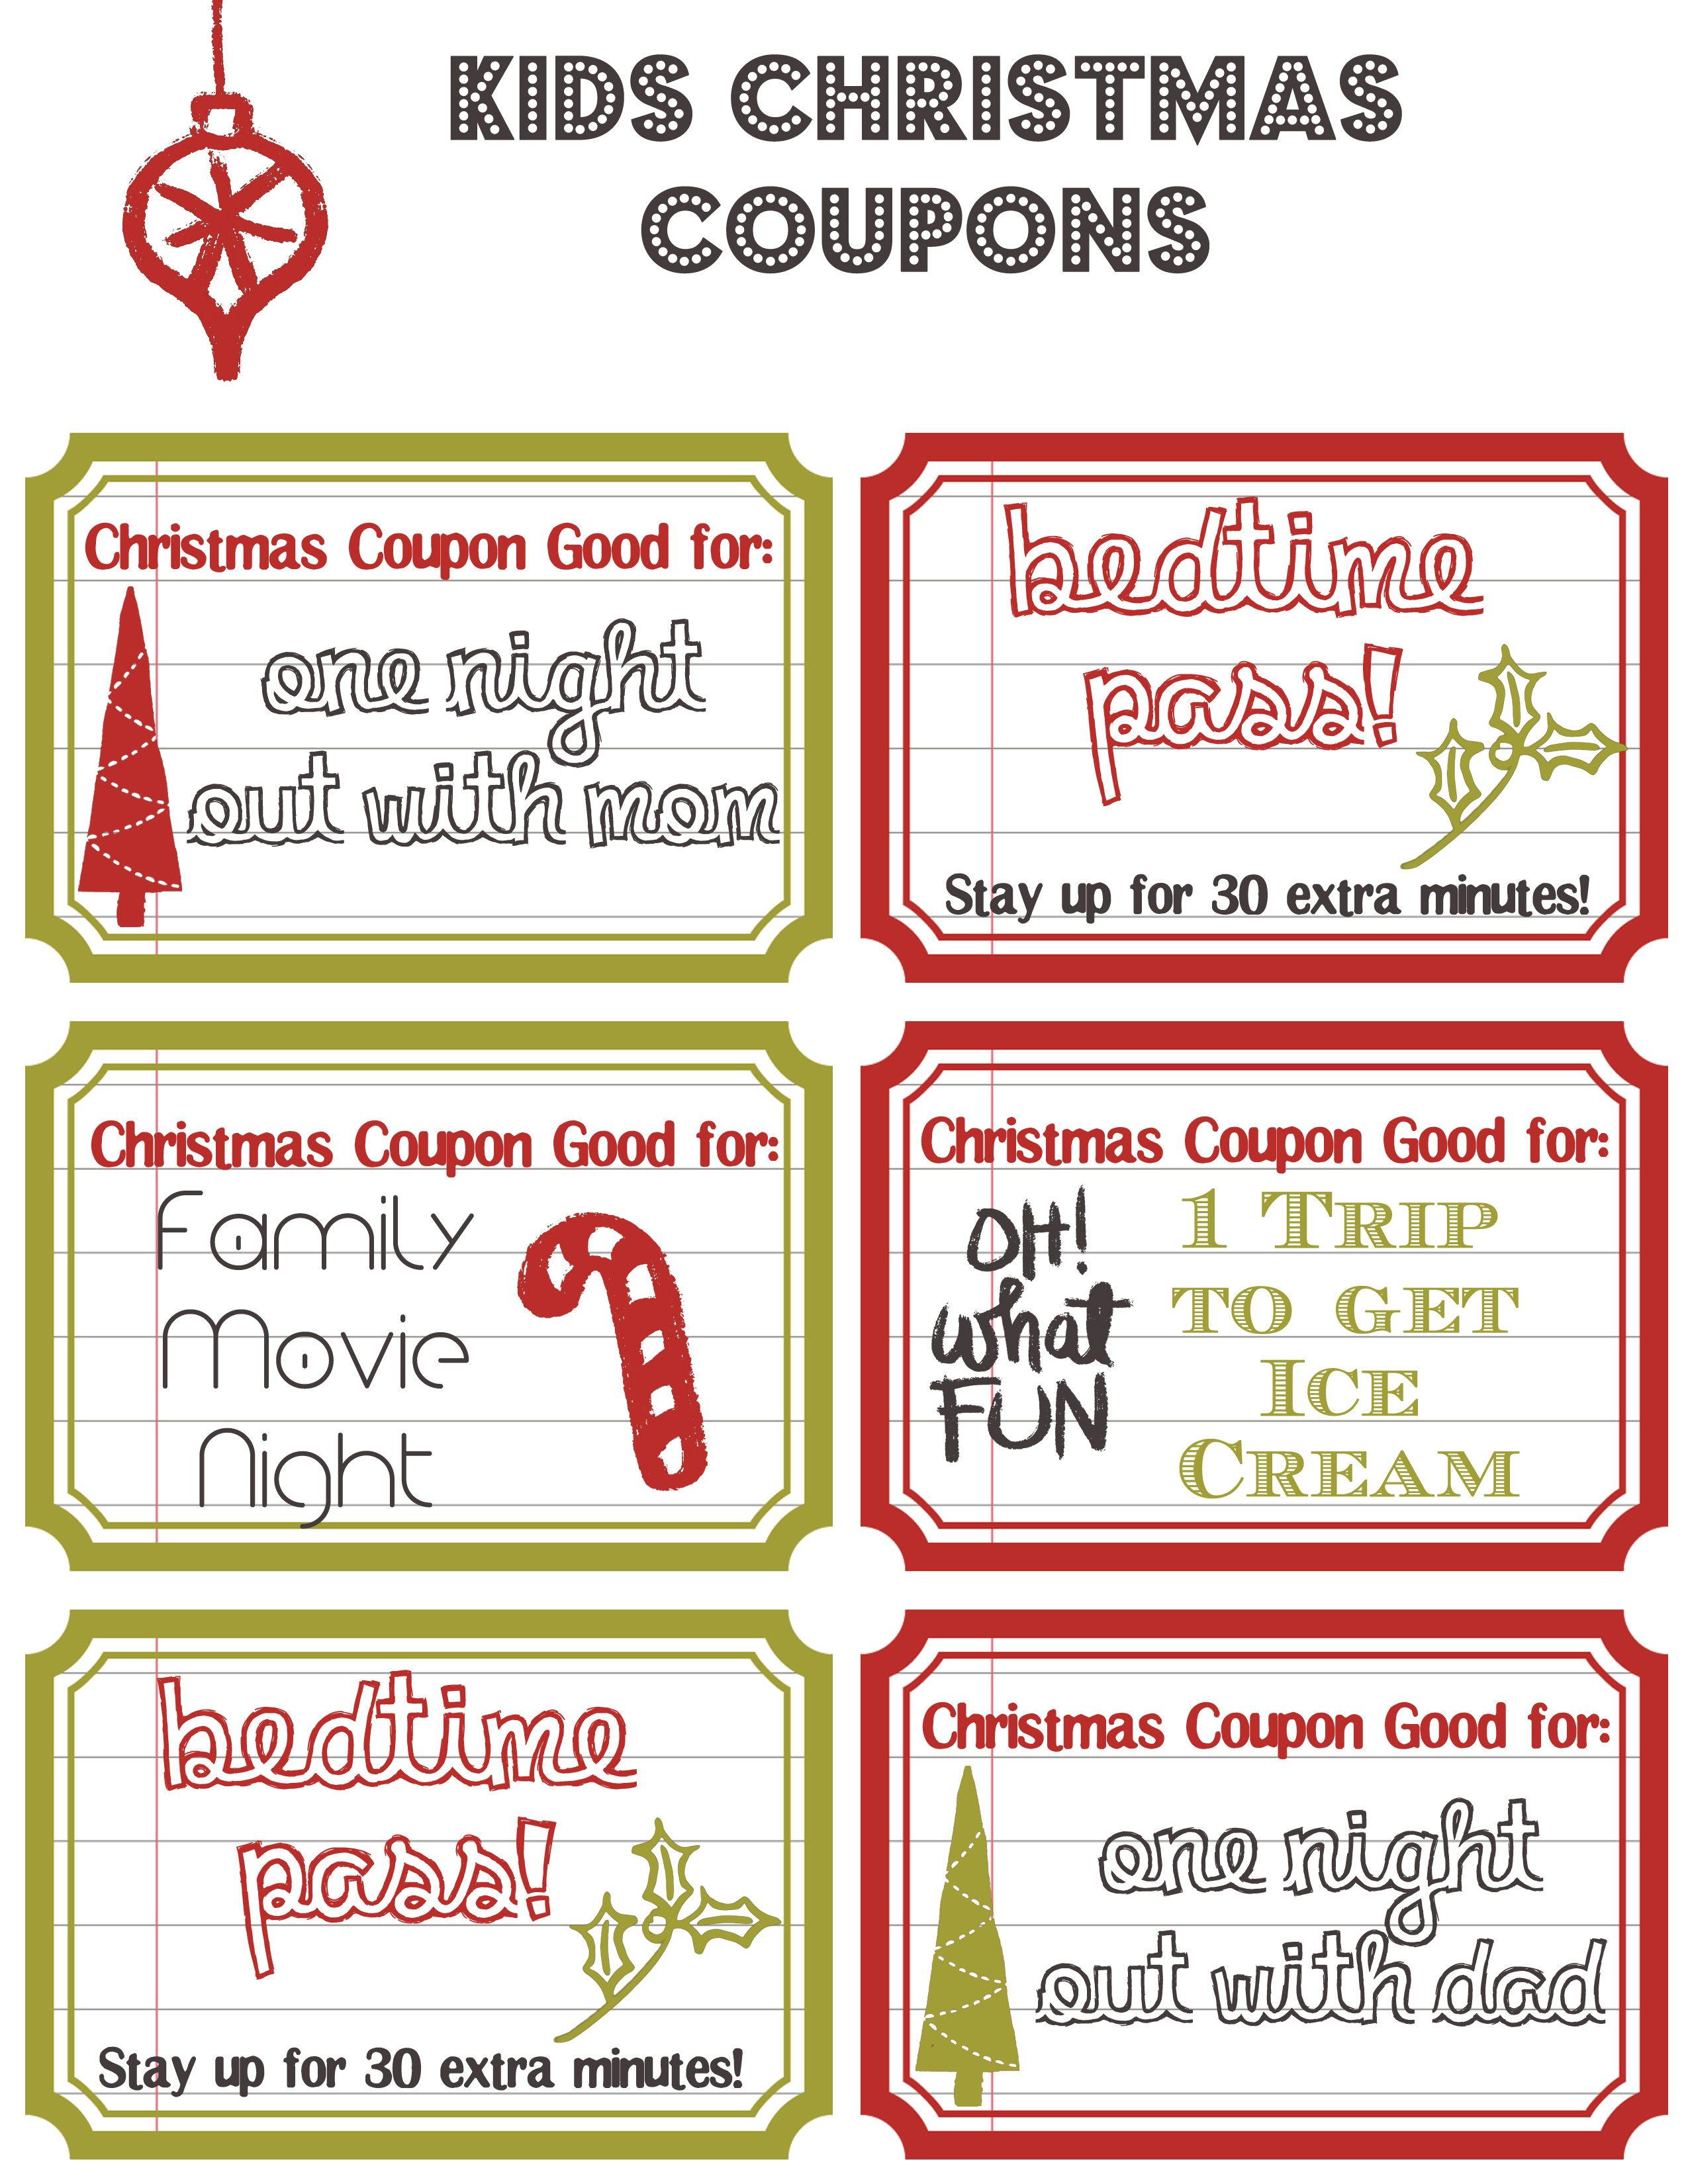 Kids Christmas Coupons made these for AdventConspiracy